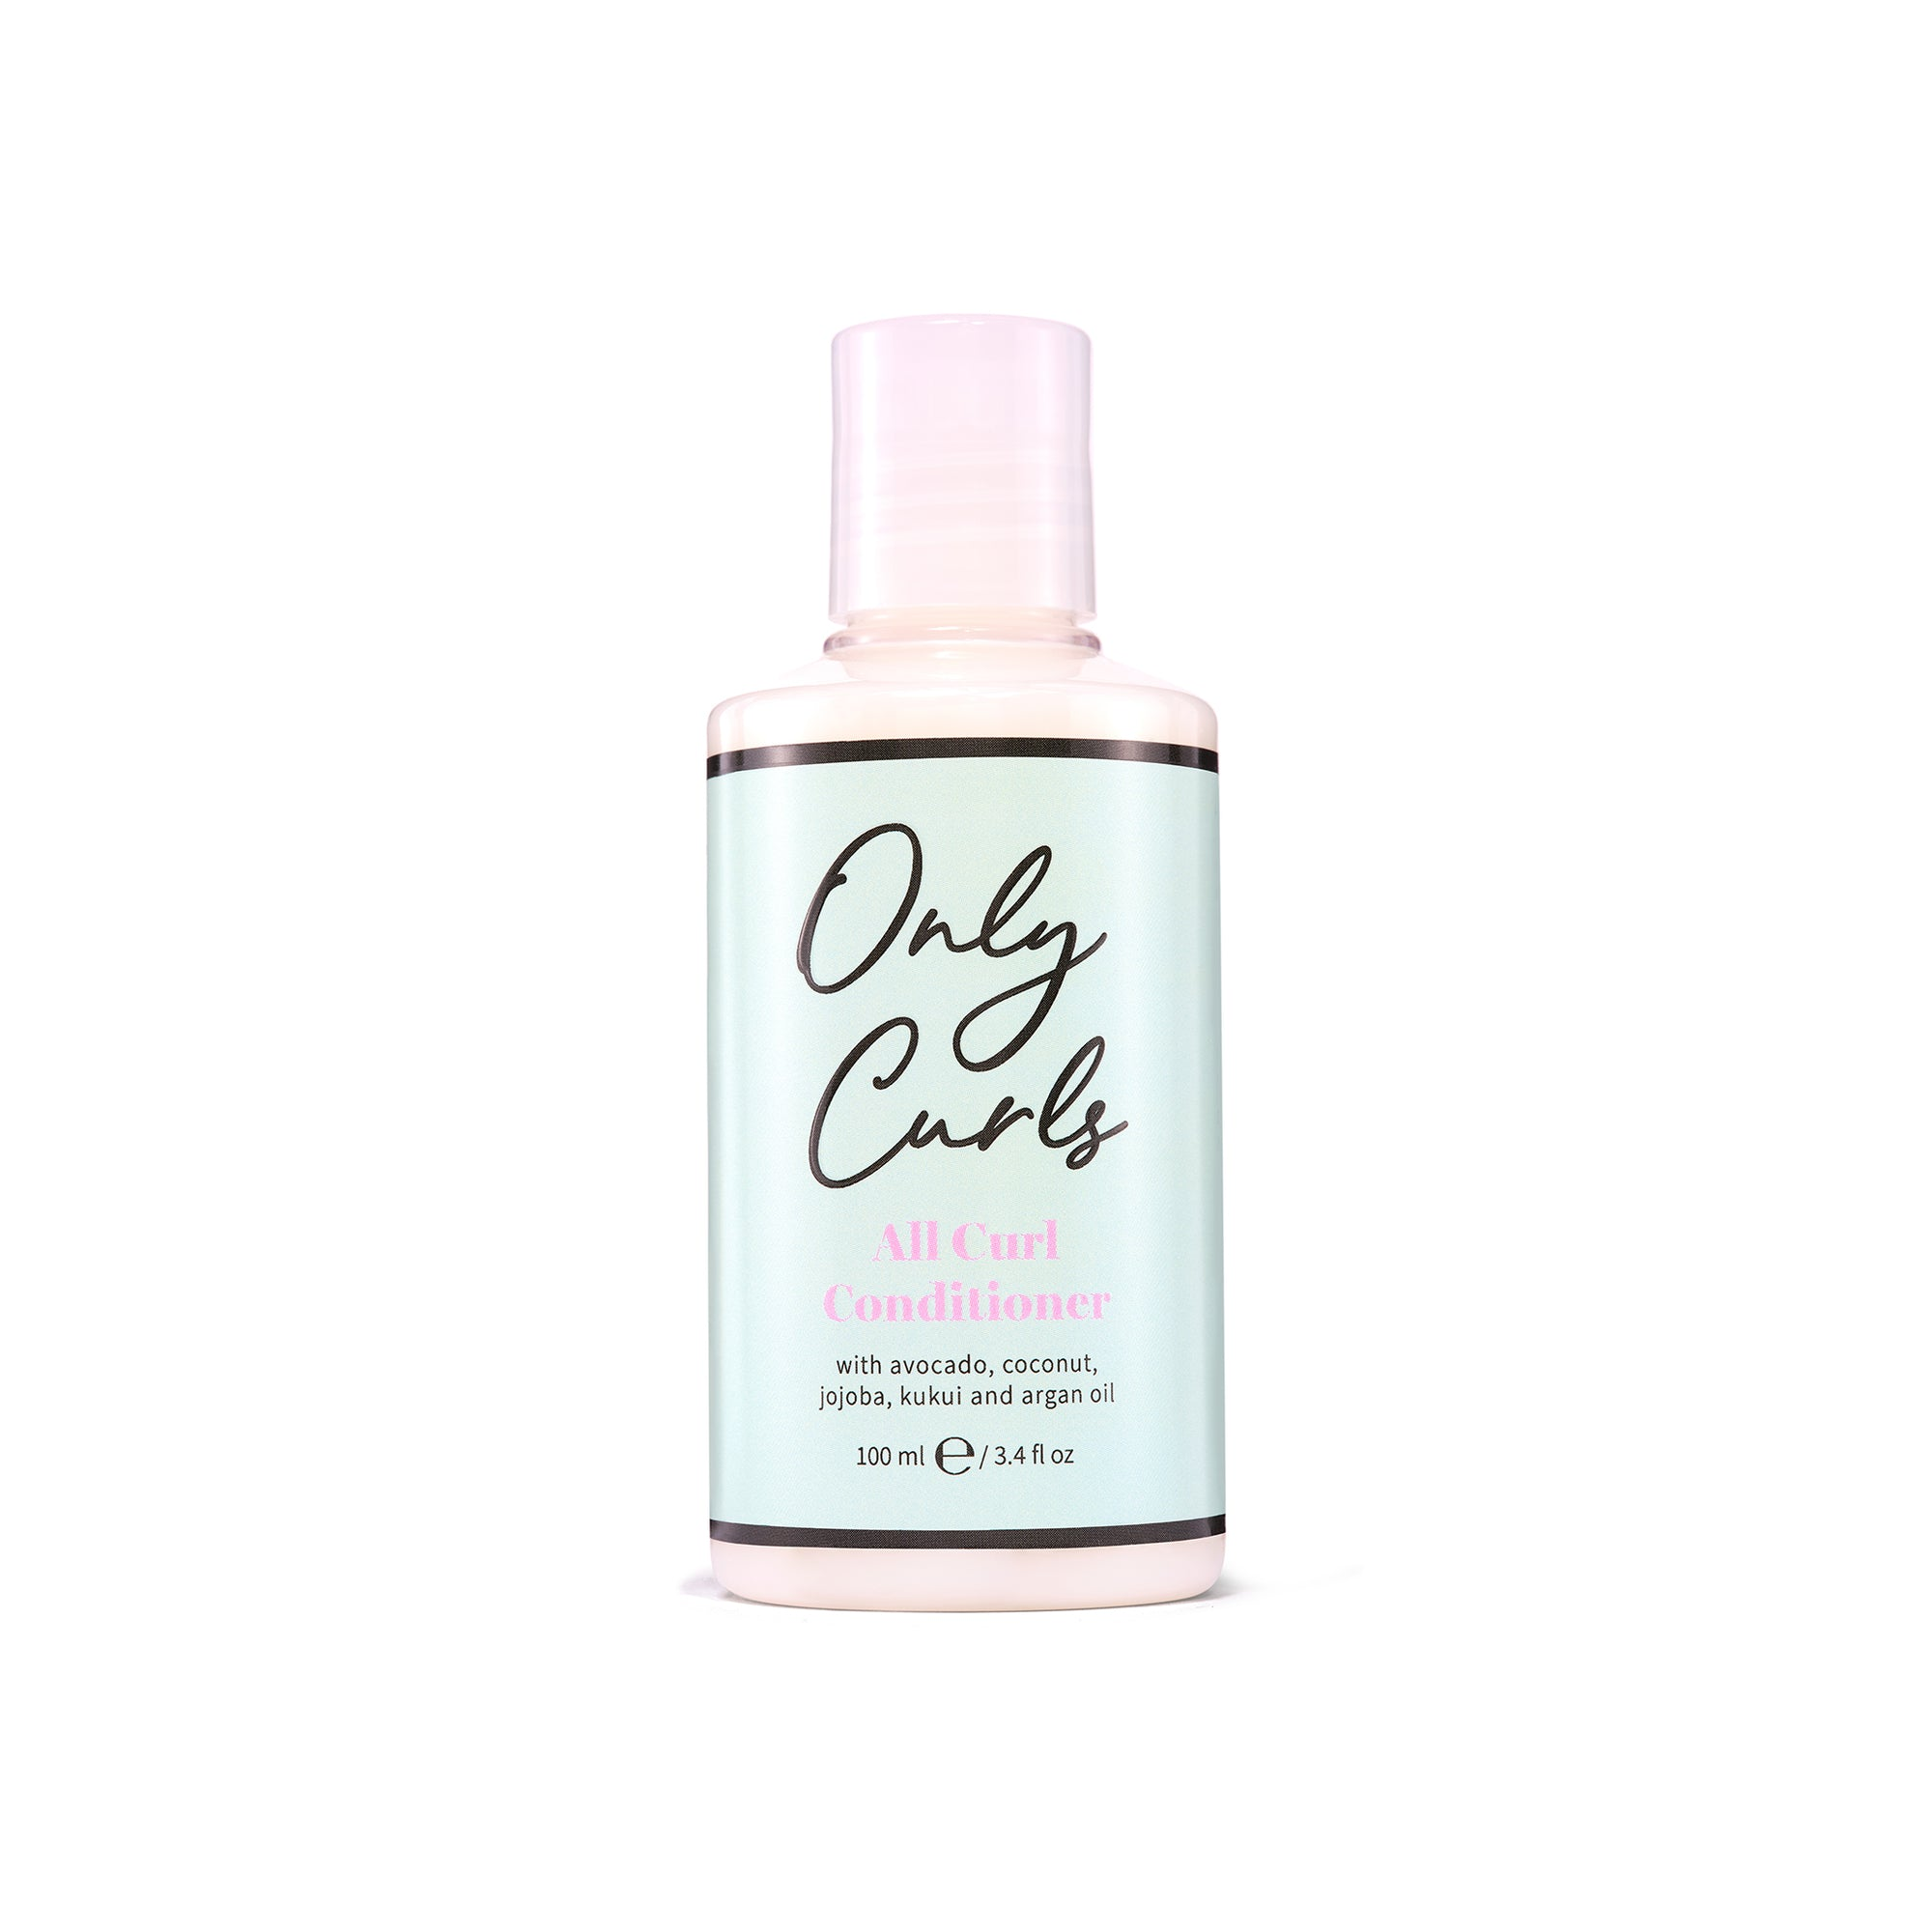 Only Curls All Curl Conditioner Travel Mini 100ml - Only Curls